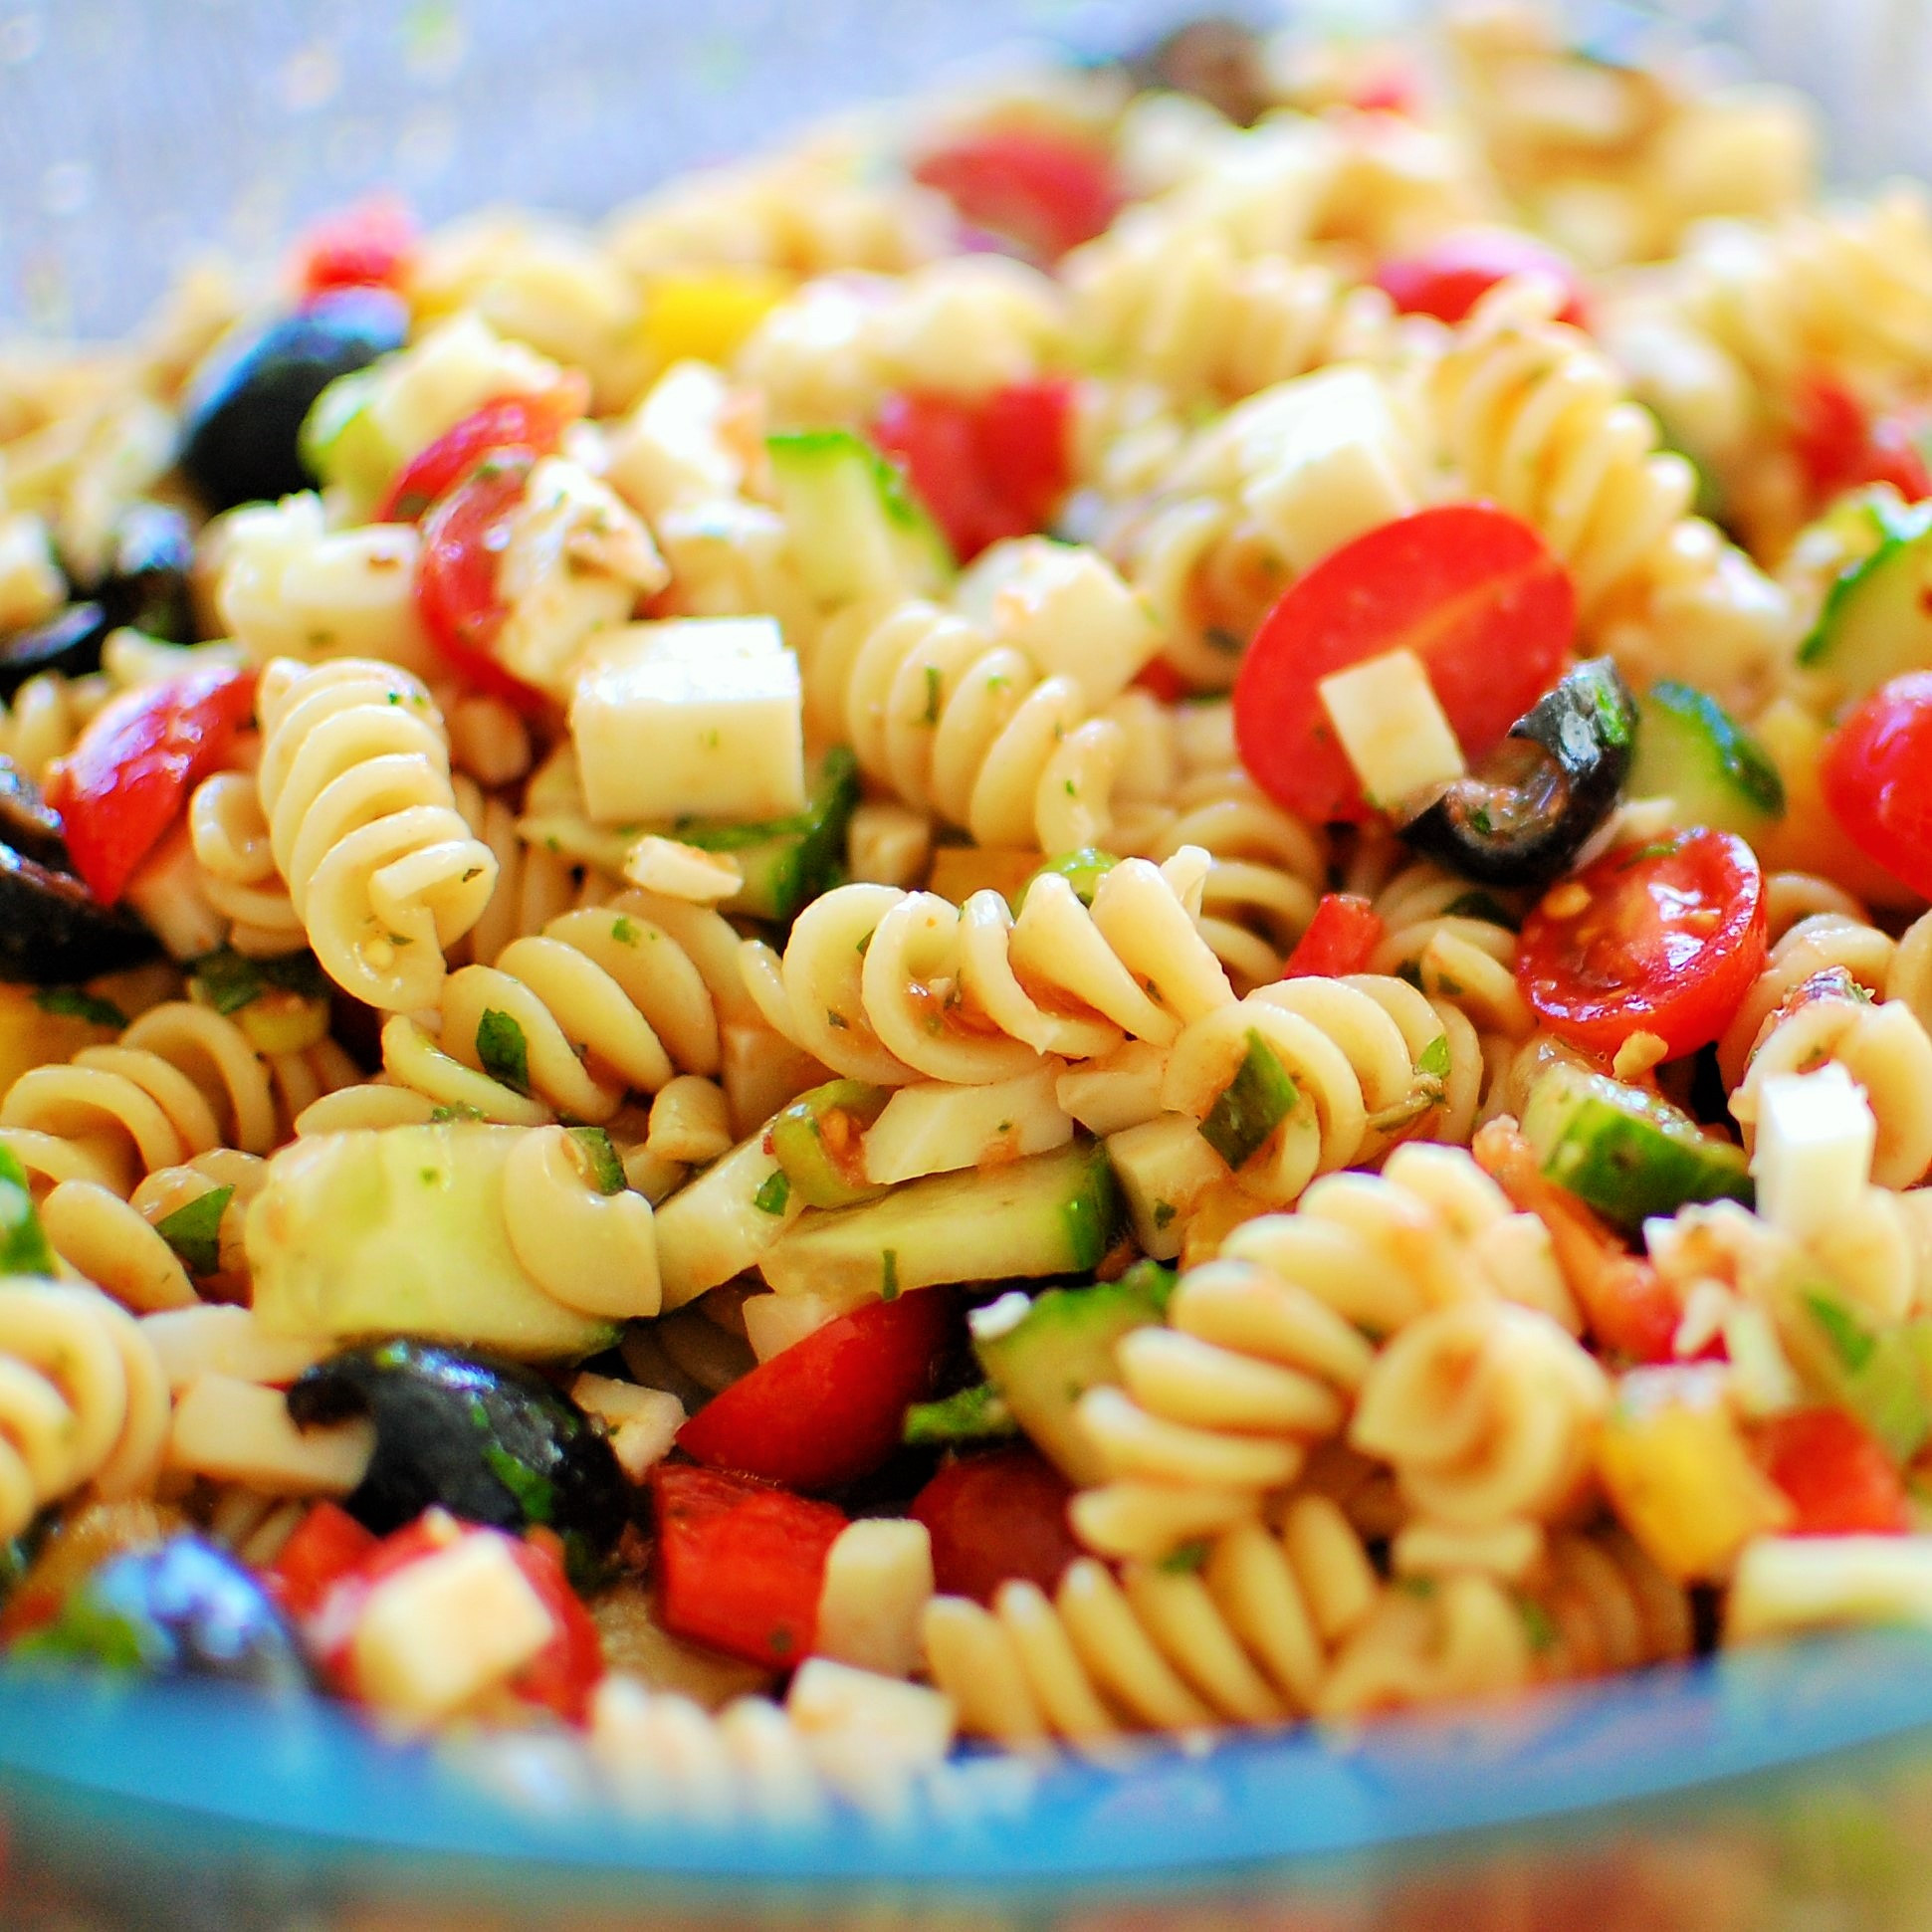 Healthy Cold Salads  Cold Pasta Salad